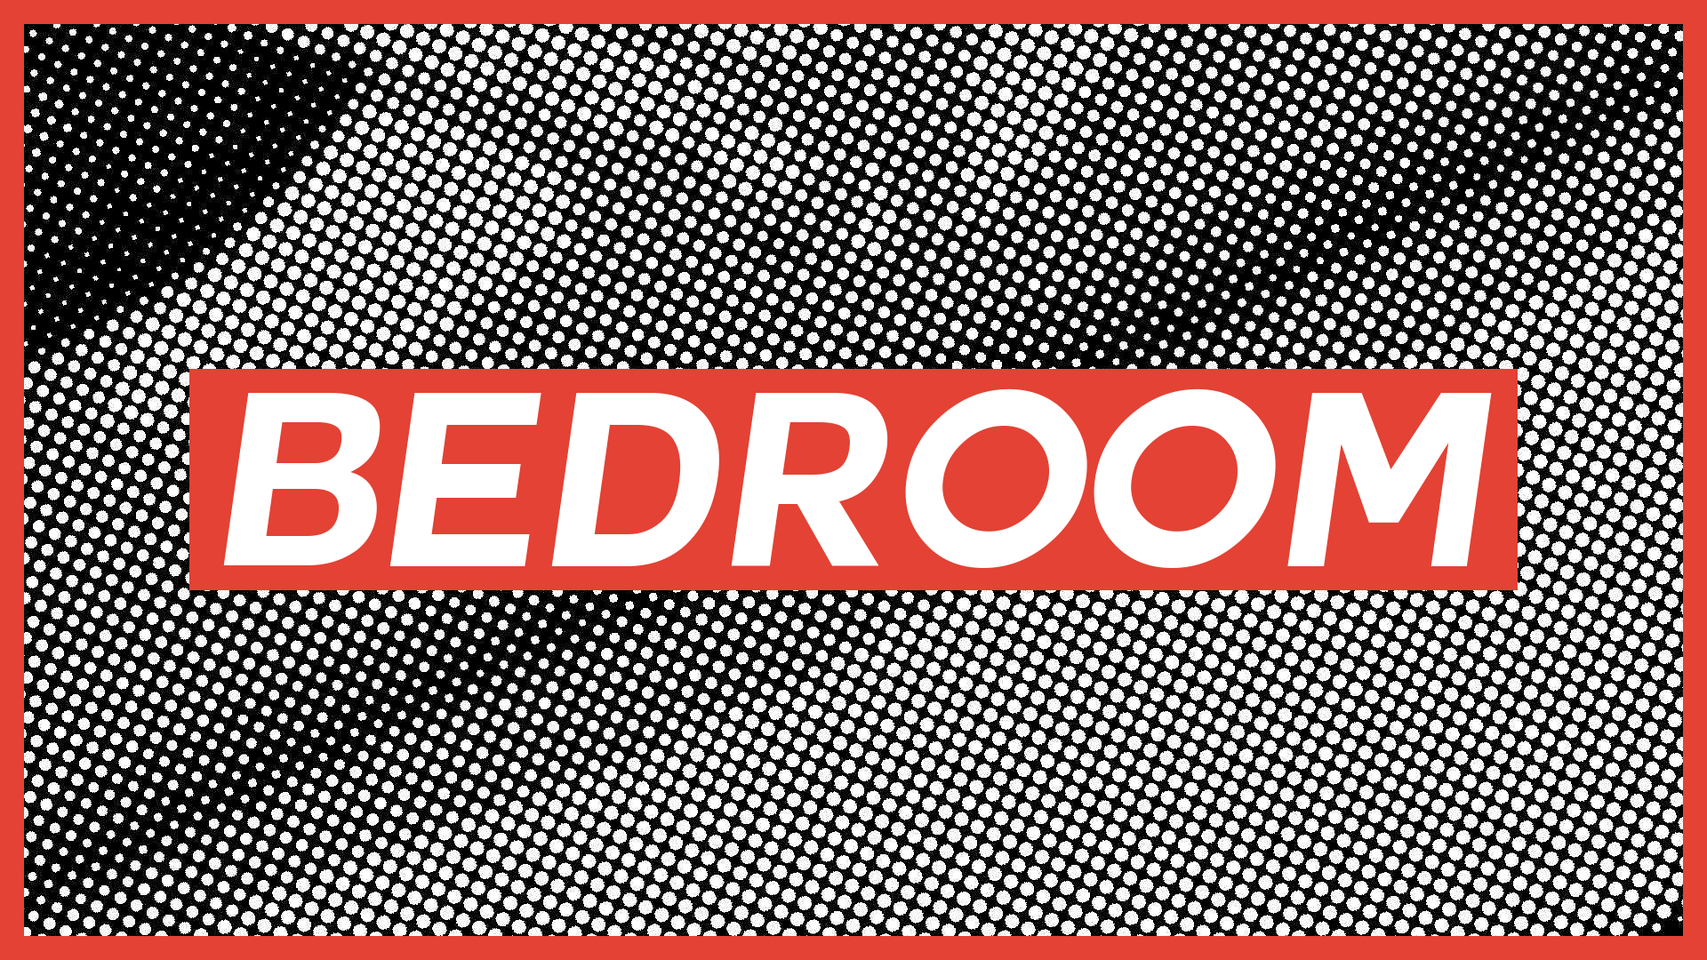 generated black and white image with the word BEDROOM in bold font overlaid